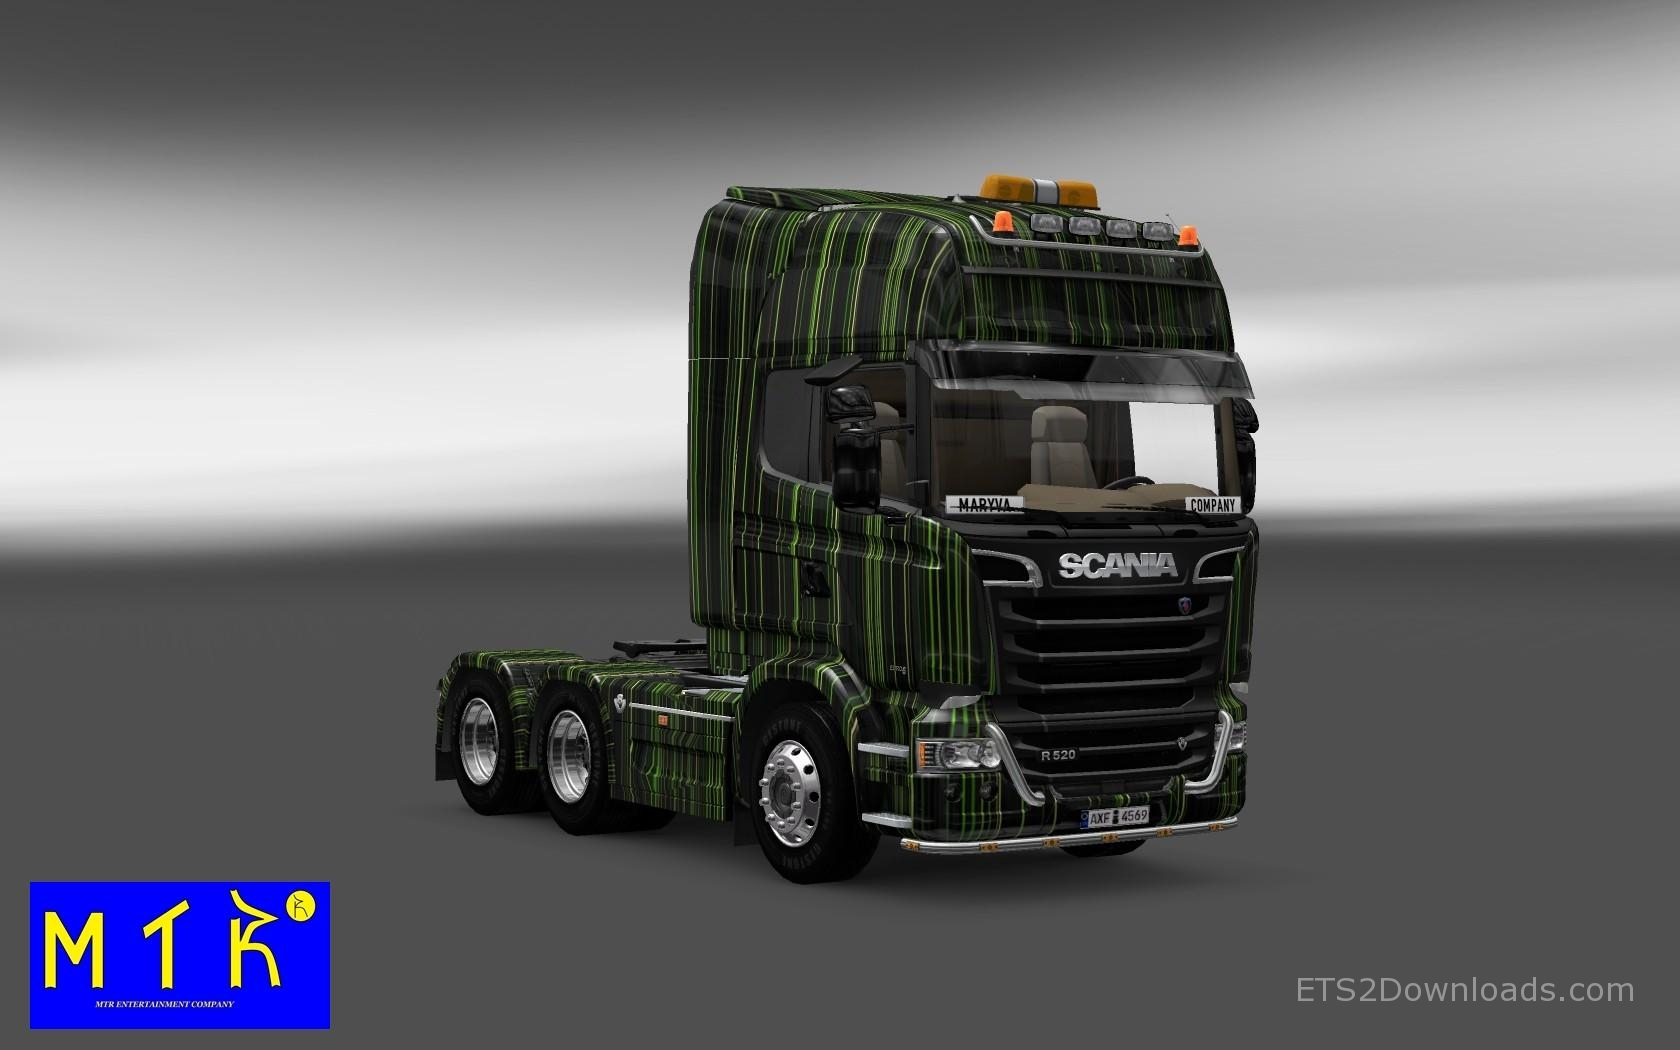 green-stripes-skin-for-scania-streamline